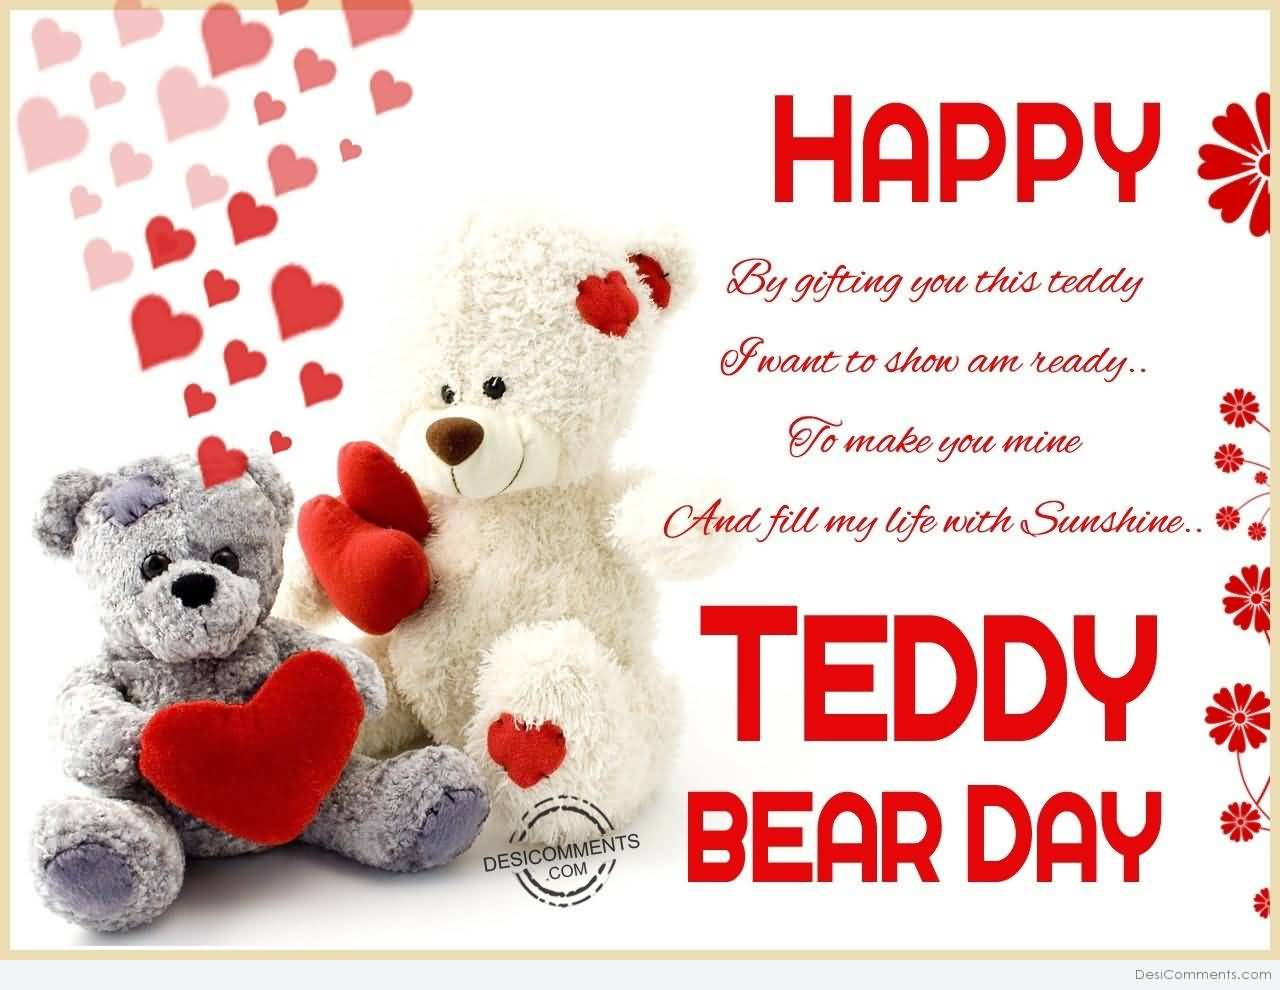 45 most beautiful teddy day greeting card pictures by gifting you this teddy i want to show am ready to make you mine and kristyandbryce Image collections